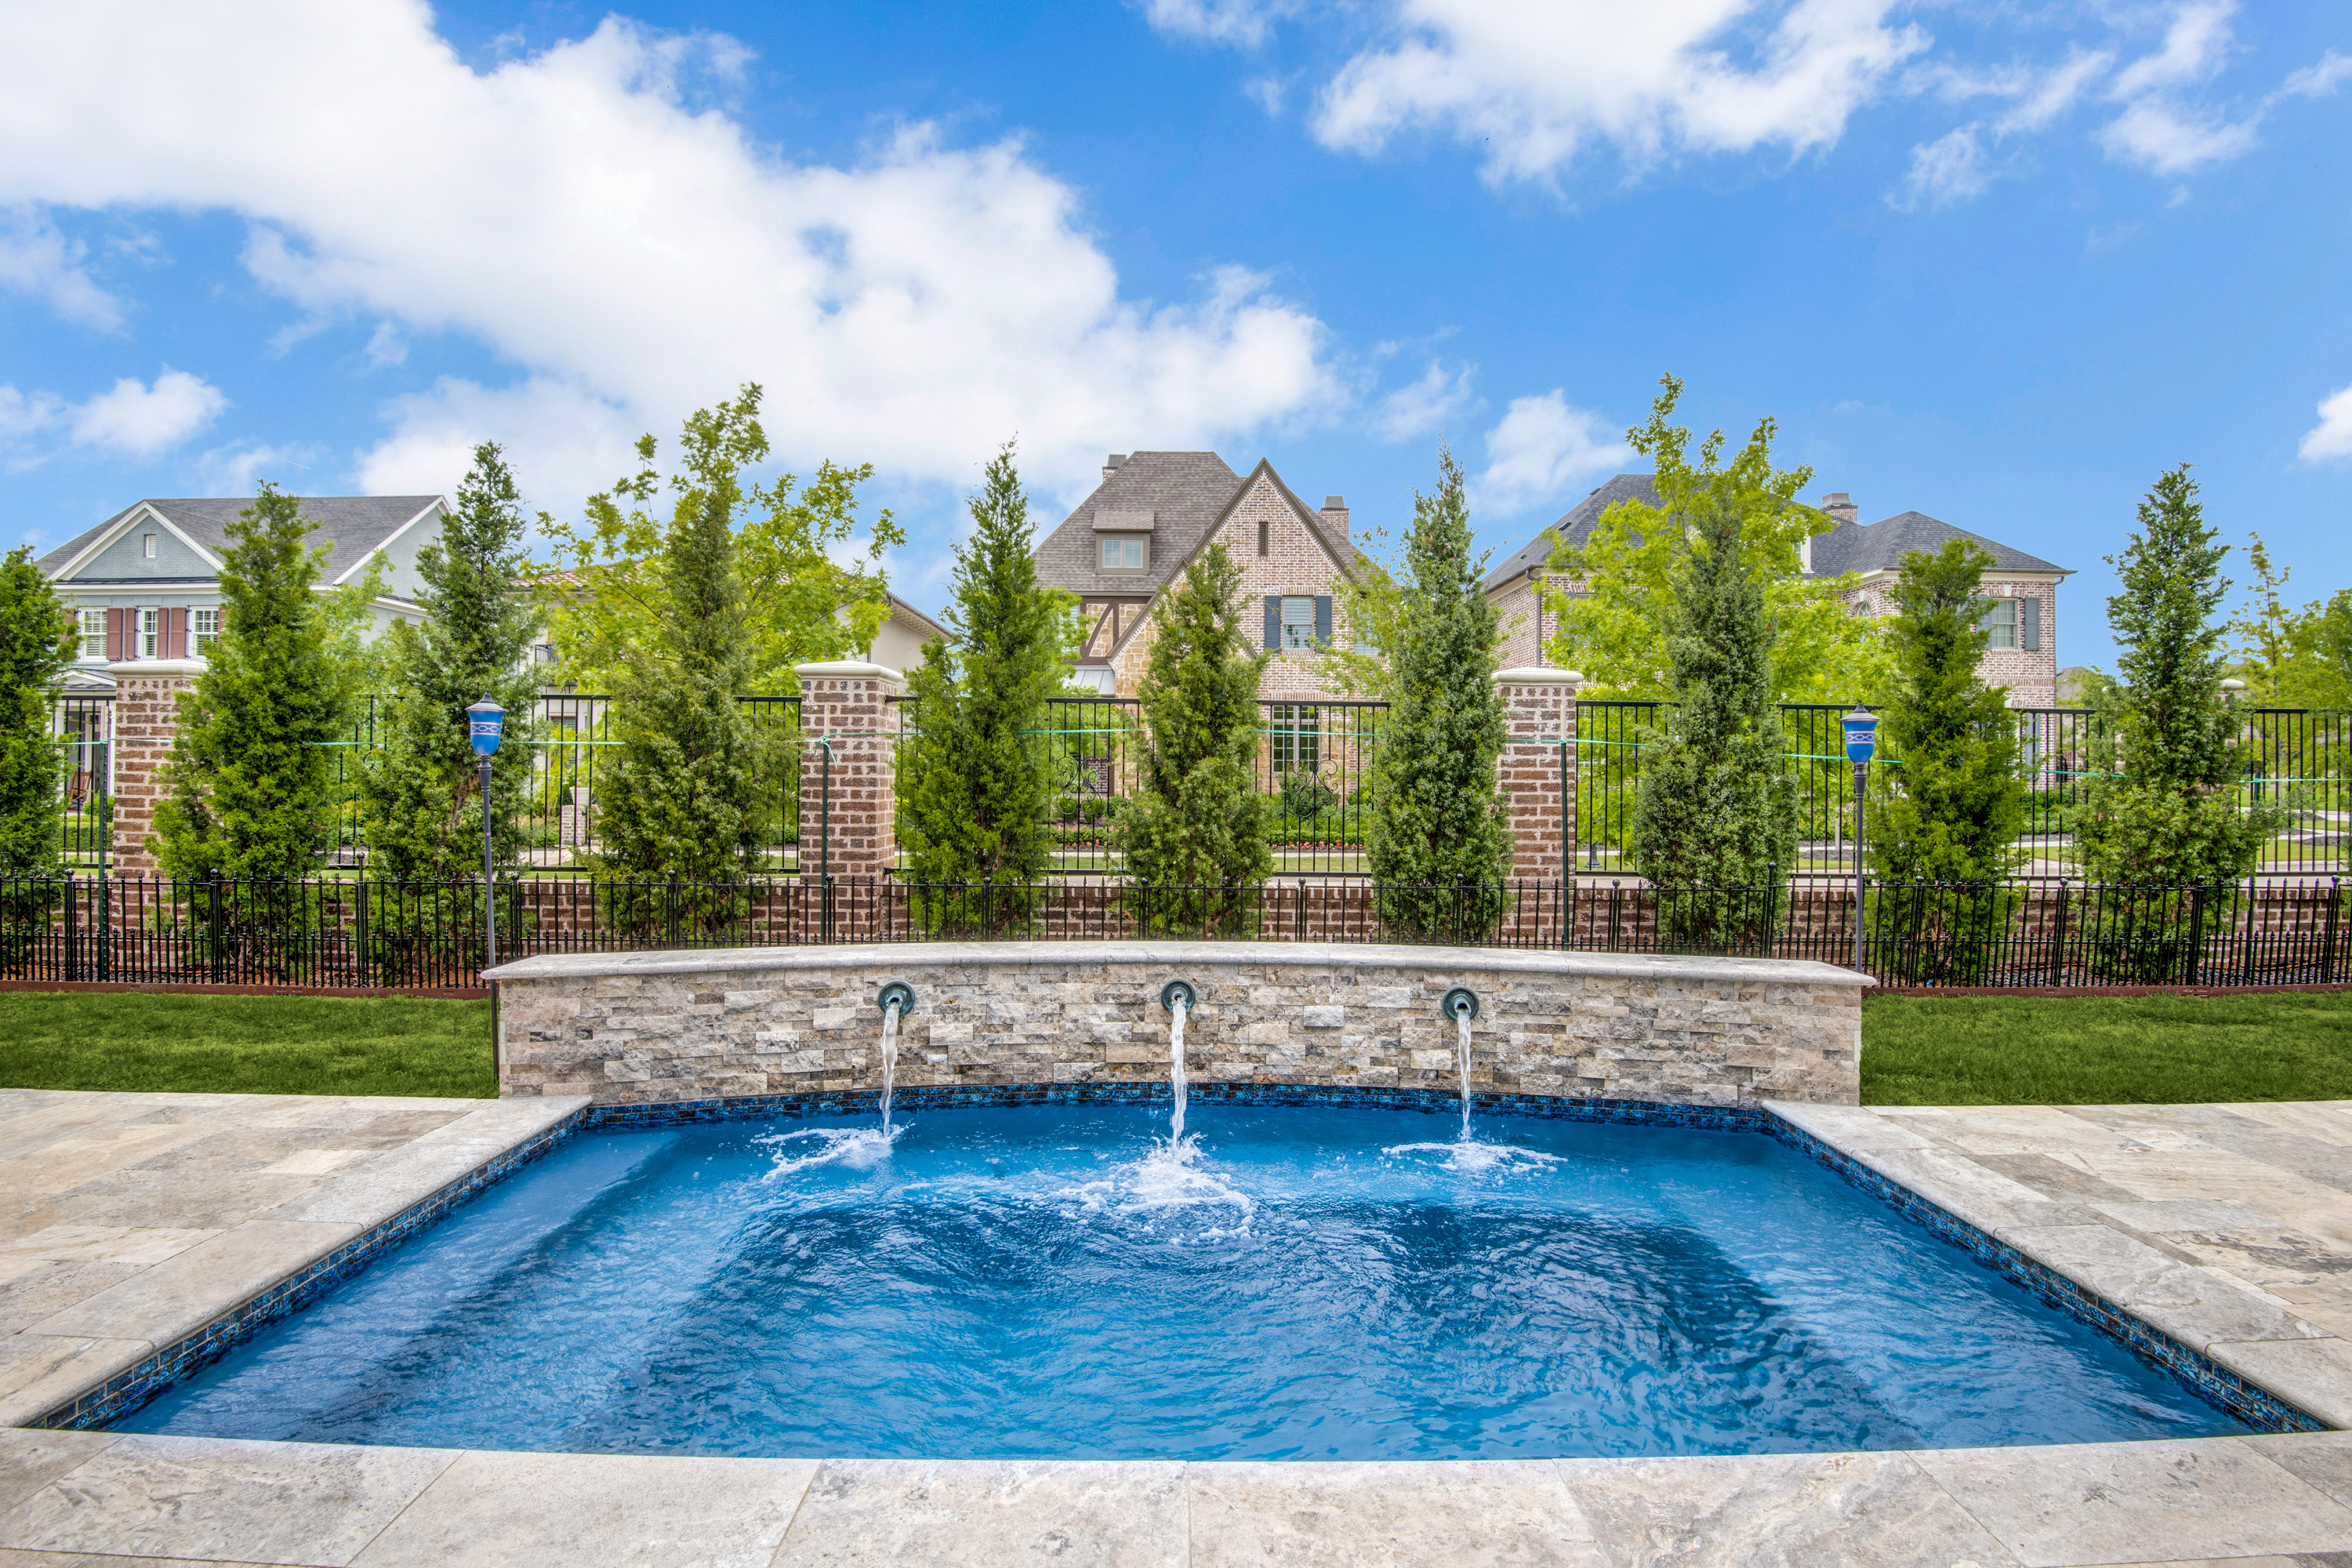 Gold_Medal_Pools-Residential_Pool_Straight_Line_Style-Frisco-TX-4